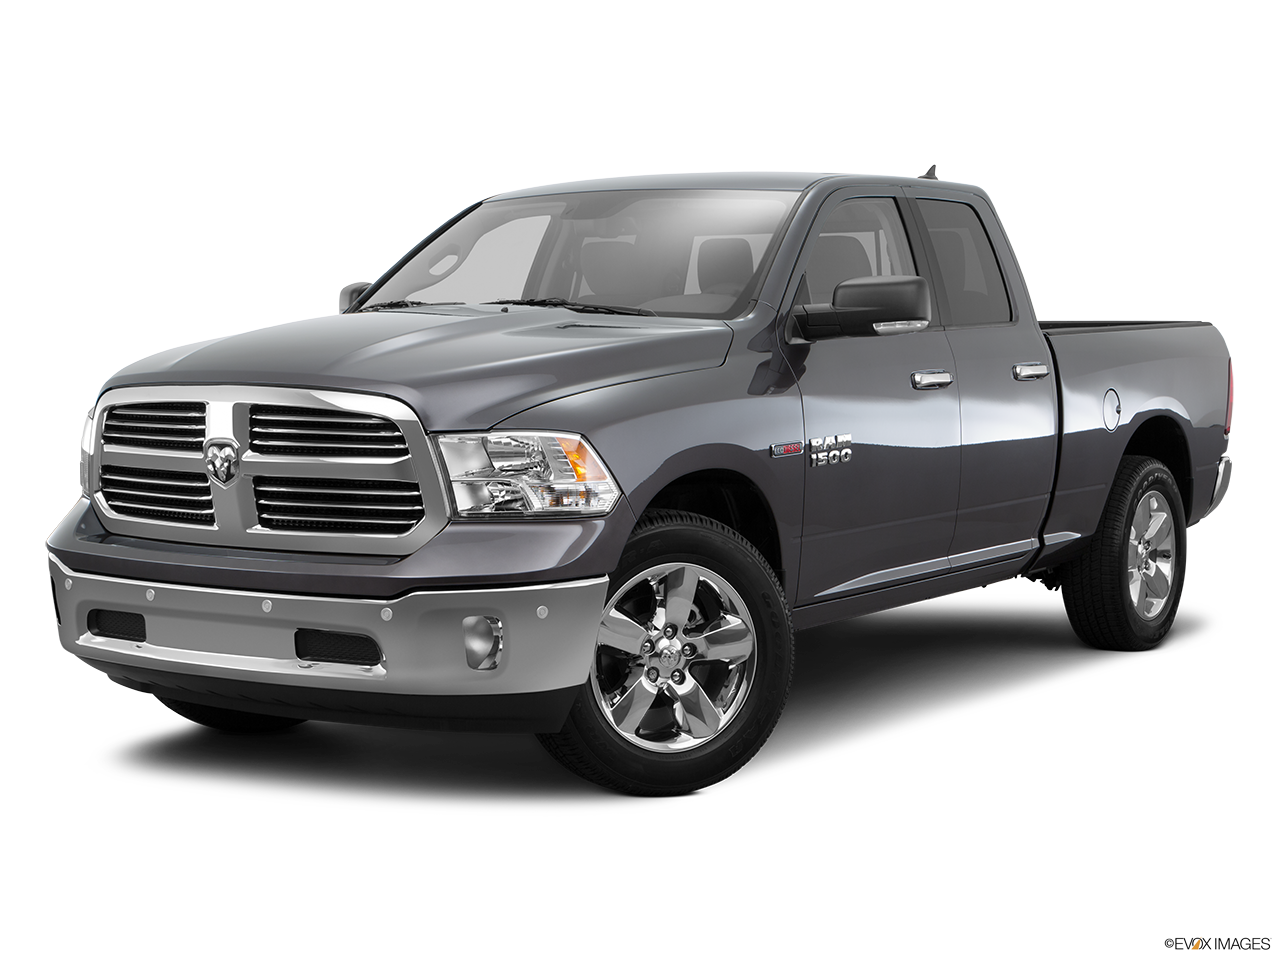 2016 ram 1500 dealer in riverside moss bros chrysler dodge jeep ram riverside. Black Bedroom Furniture Sets. Home Design Ideas